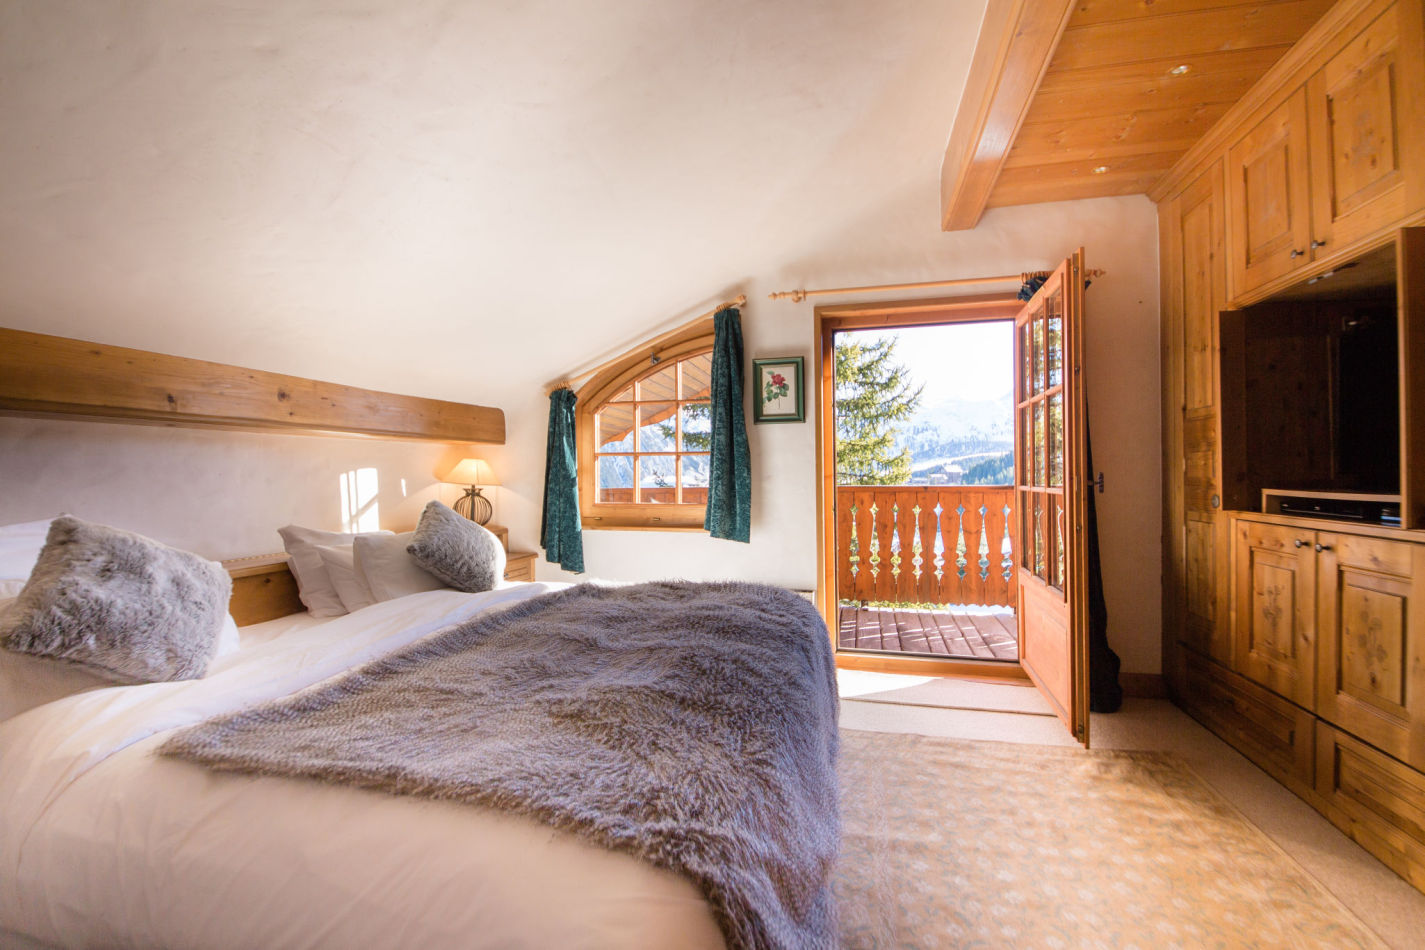 chalet-maisonnee-a-bedroom-image-3